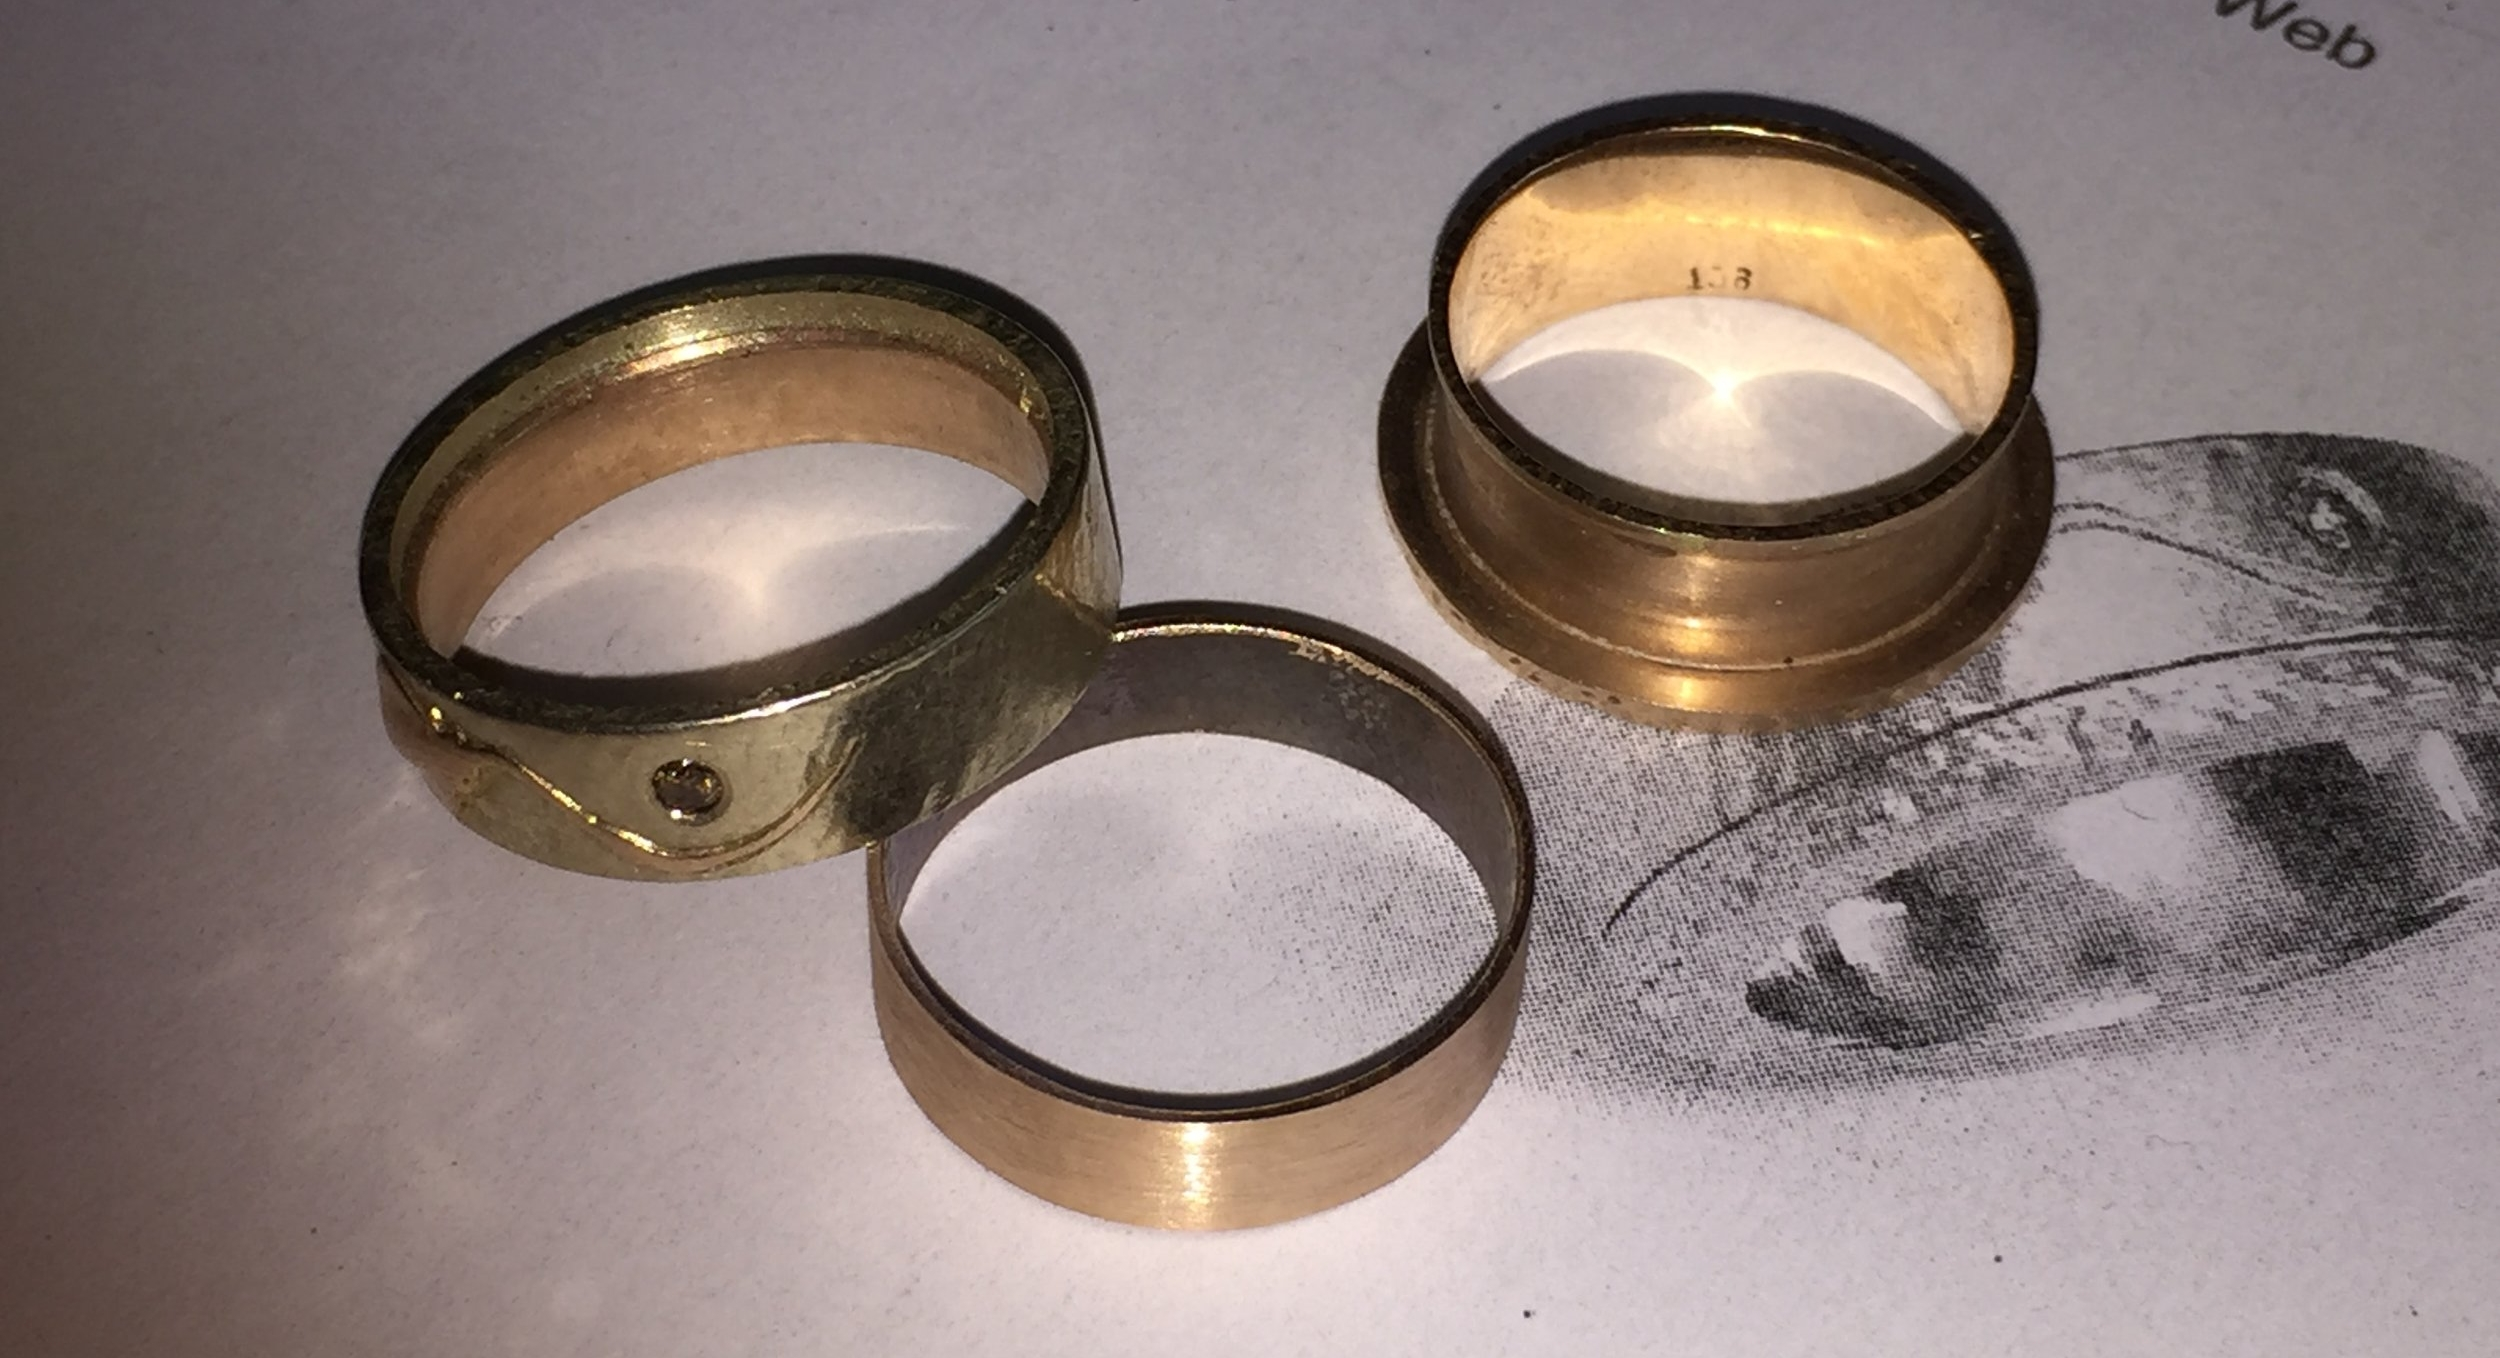 The new sleeve in the middle ready to be added to the base of the ring on the right.